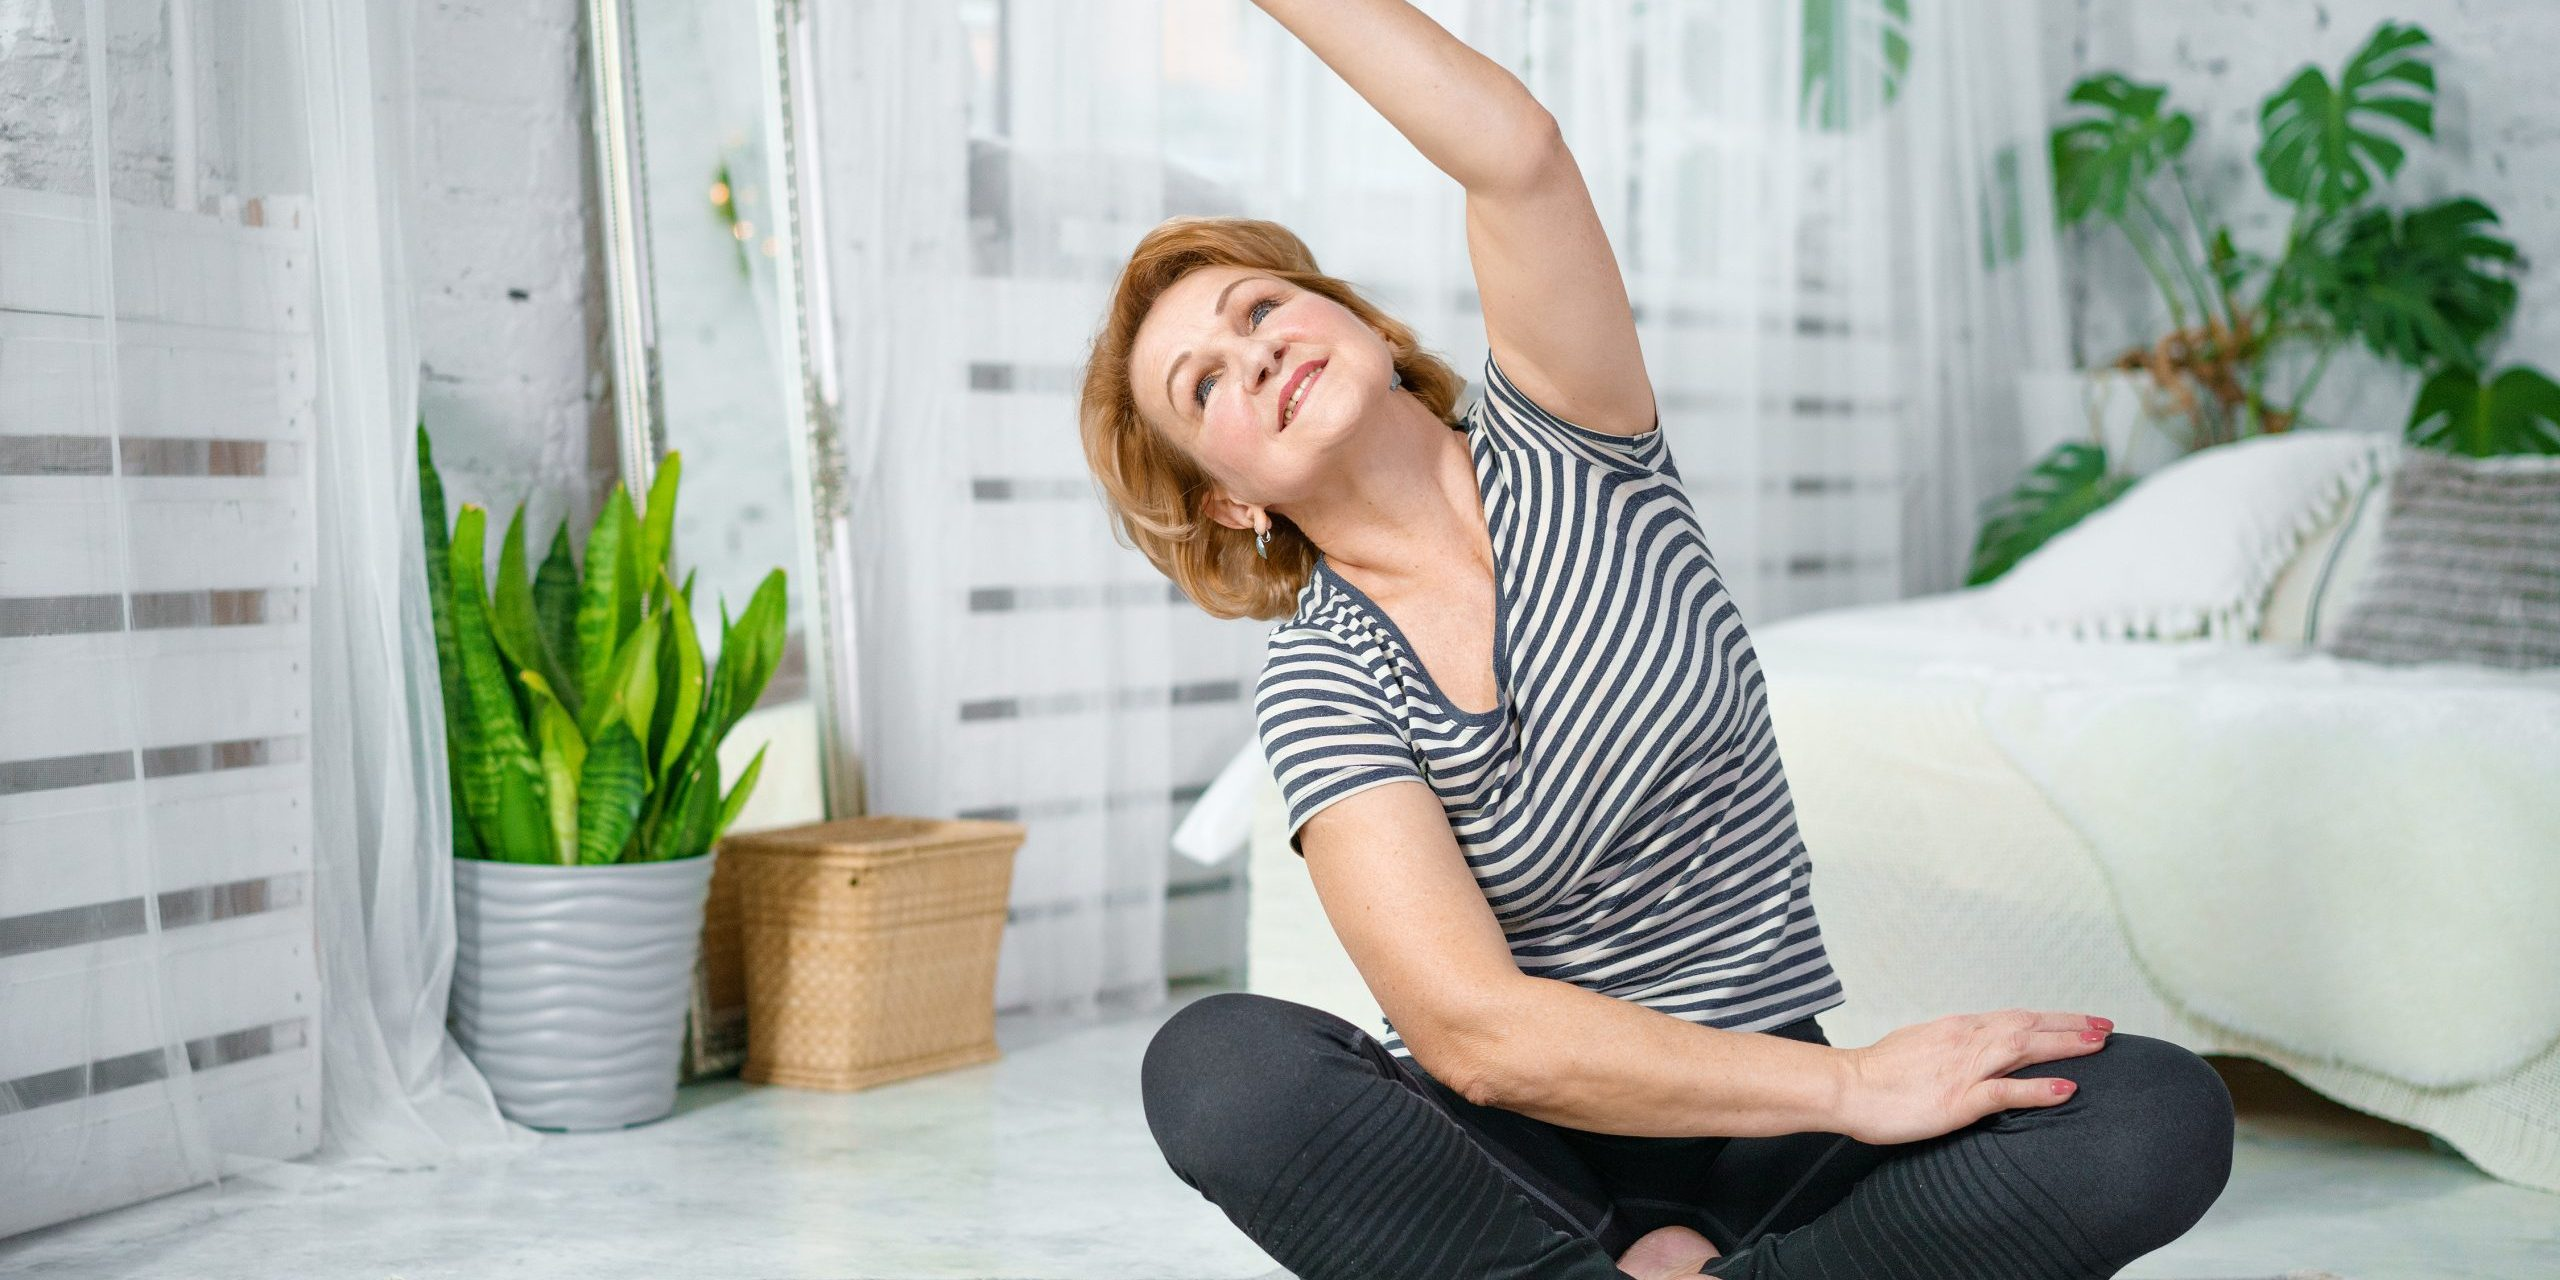 Senior woman exercising while sitting in lotus position. Active mature woman doing stretching exercise in living room at home.